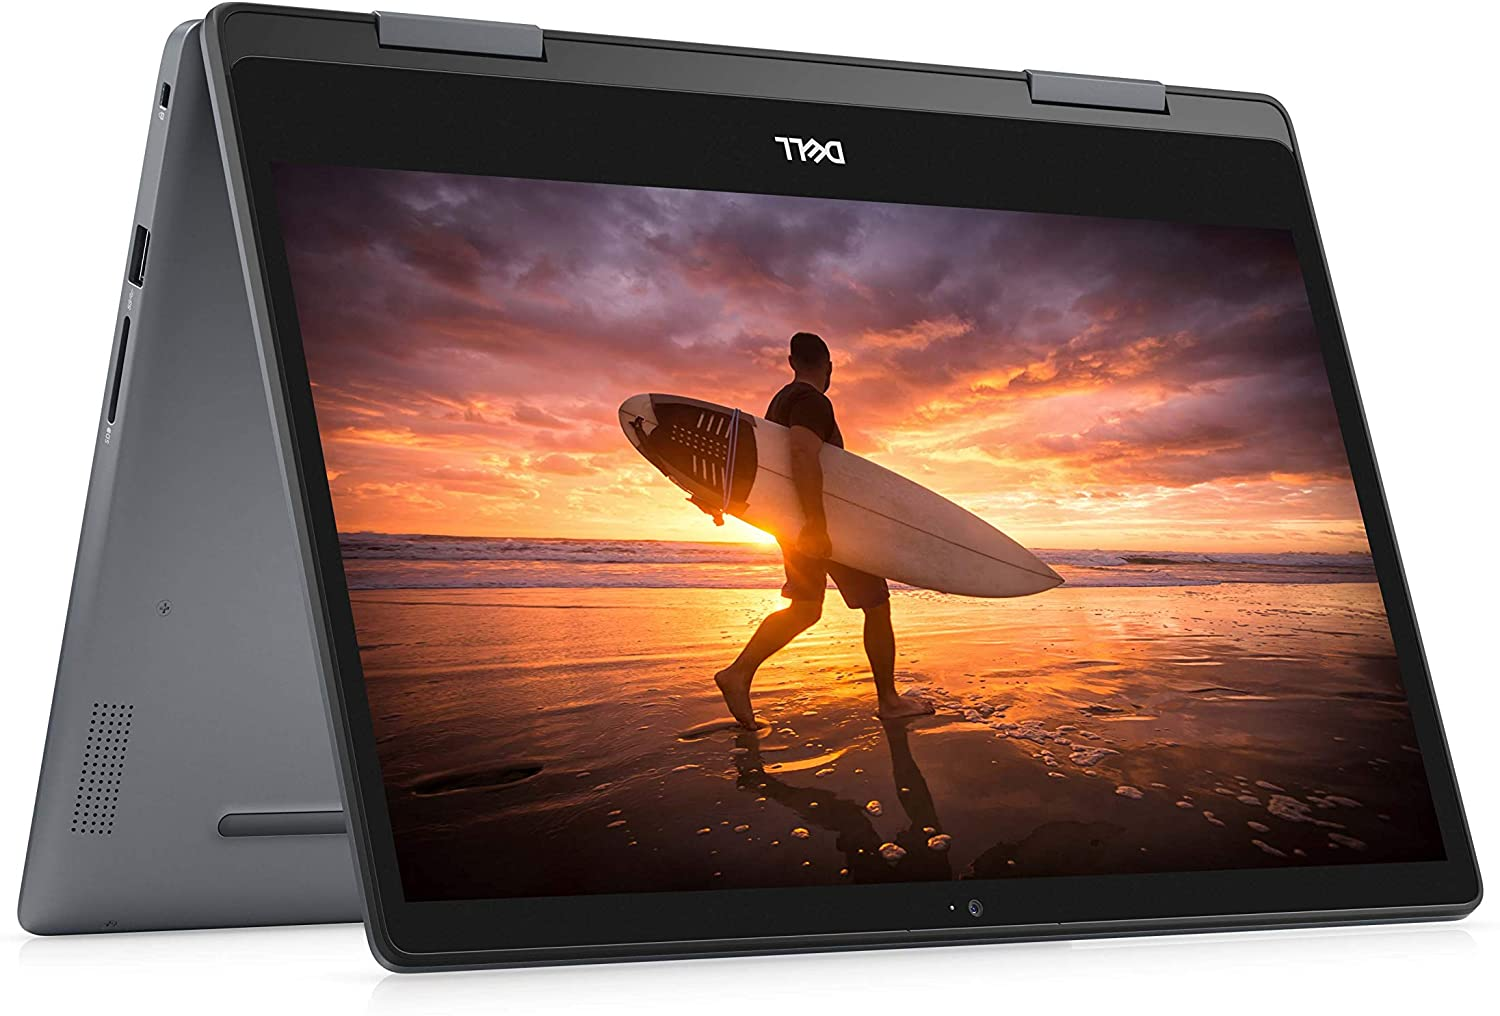 Dell Inspiron 14 Inch 2 in 1 Convertible Touchscreen Laptop